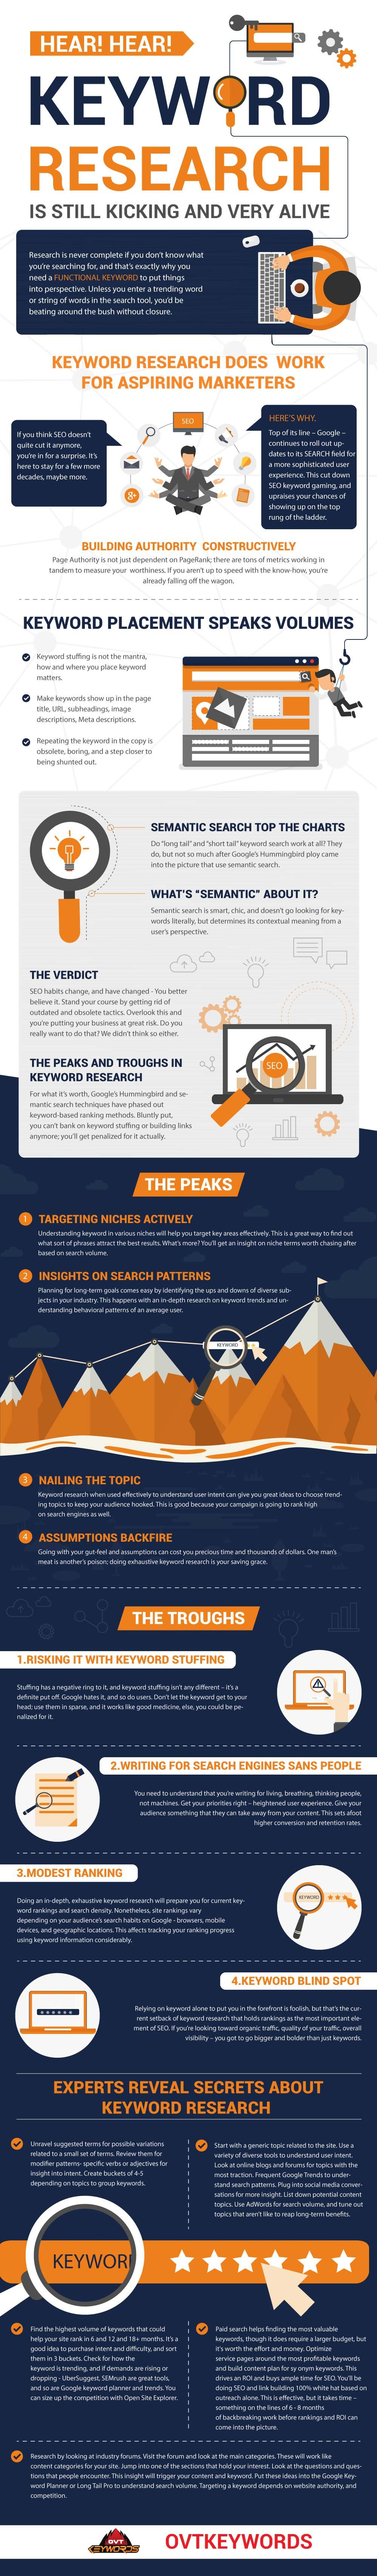 Keyword Research Walkthrough Infograpic image